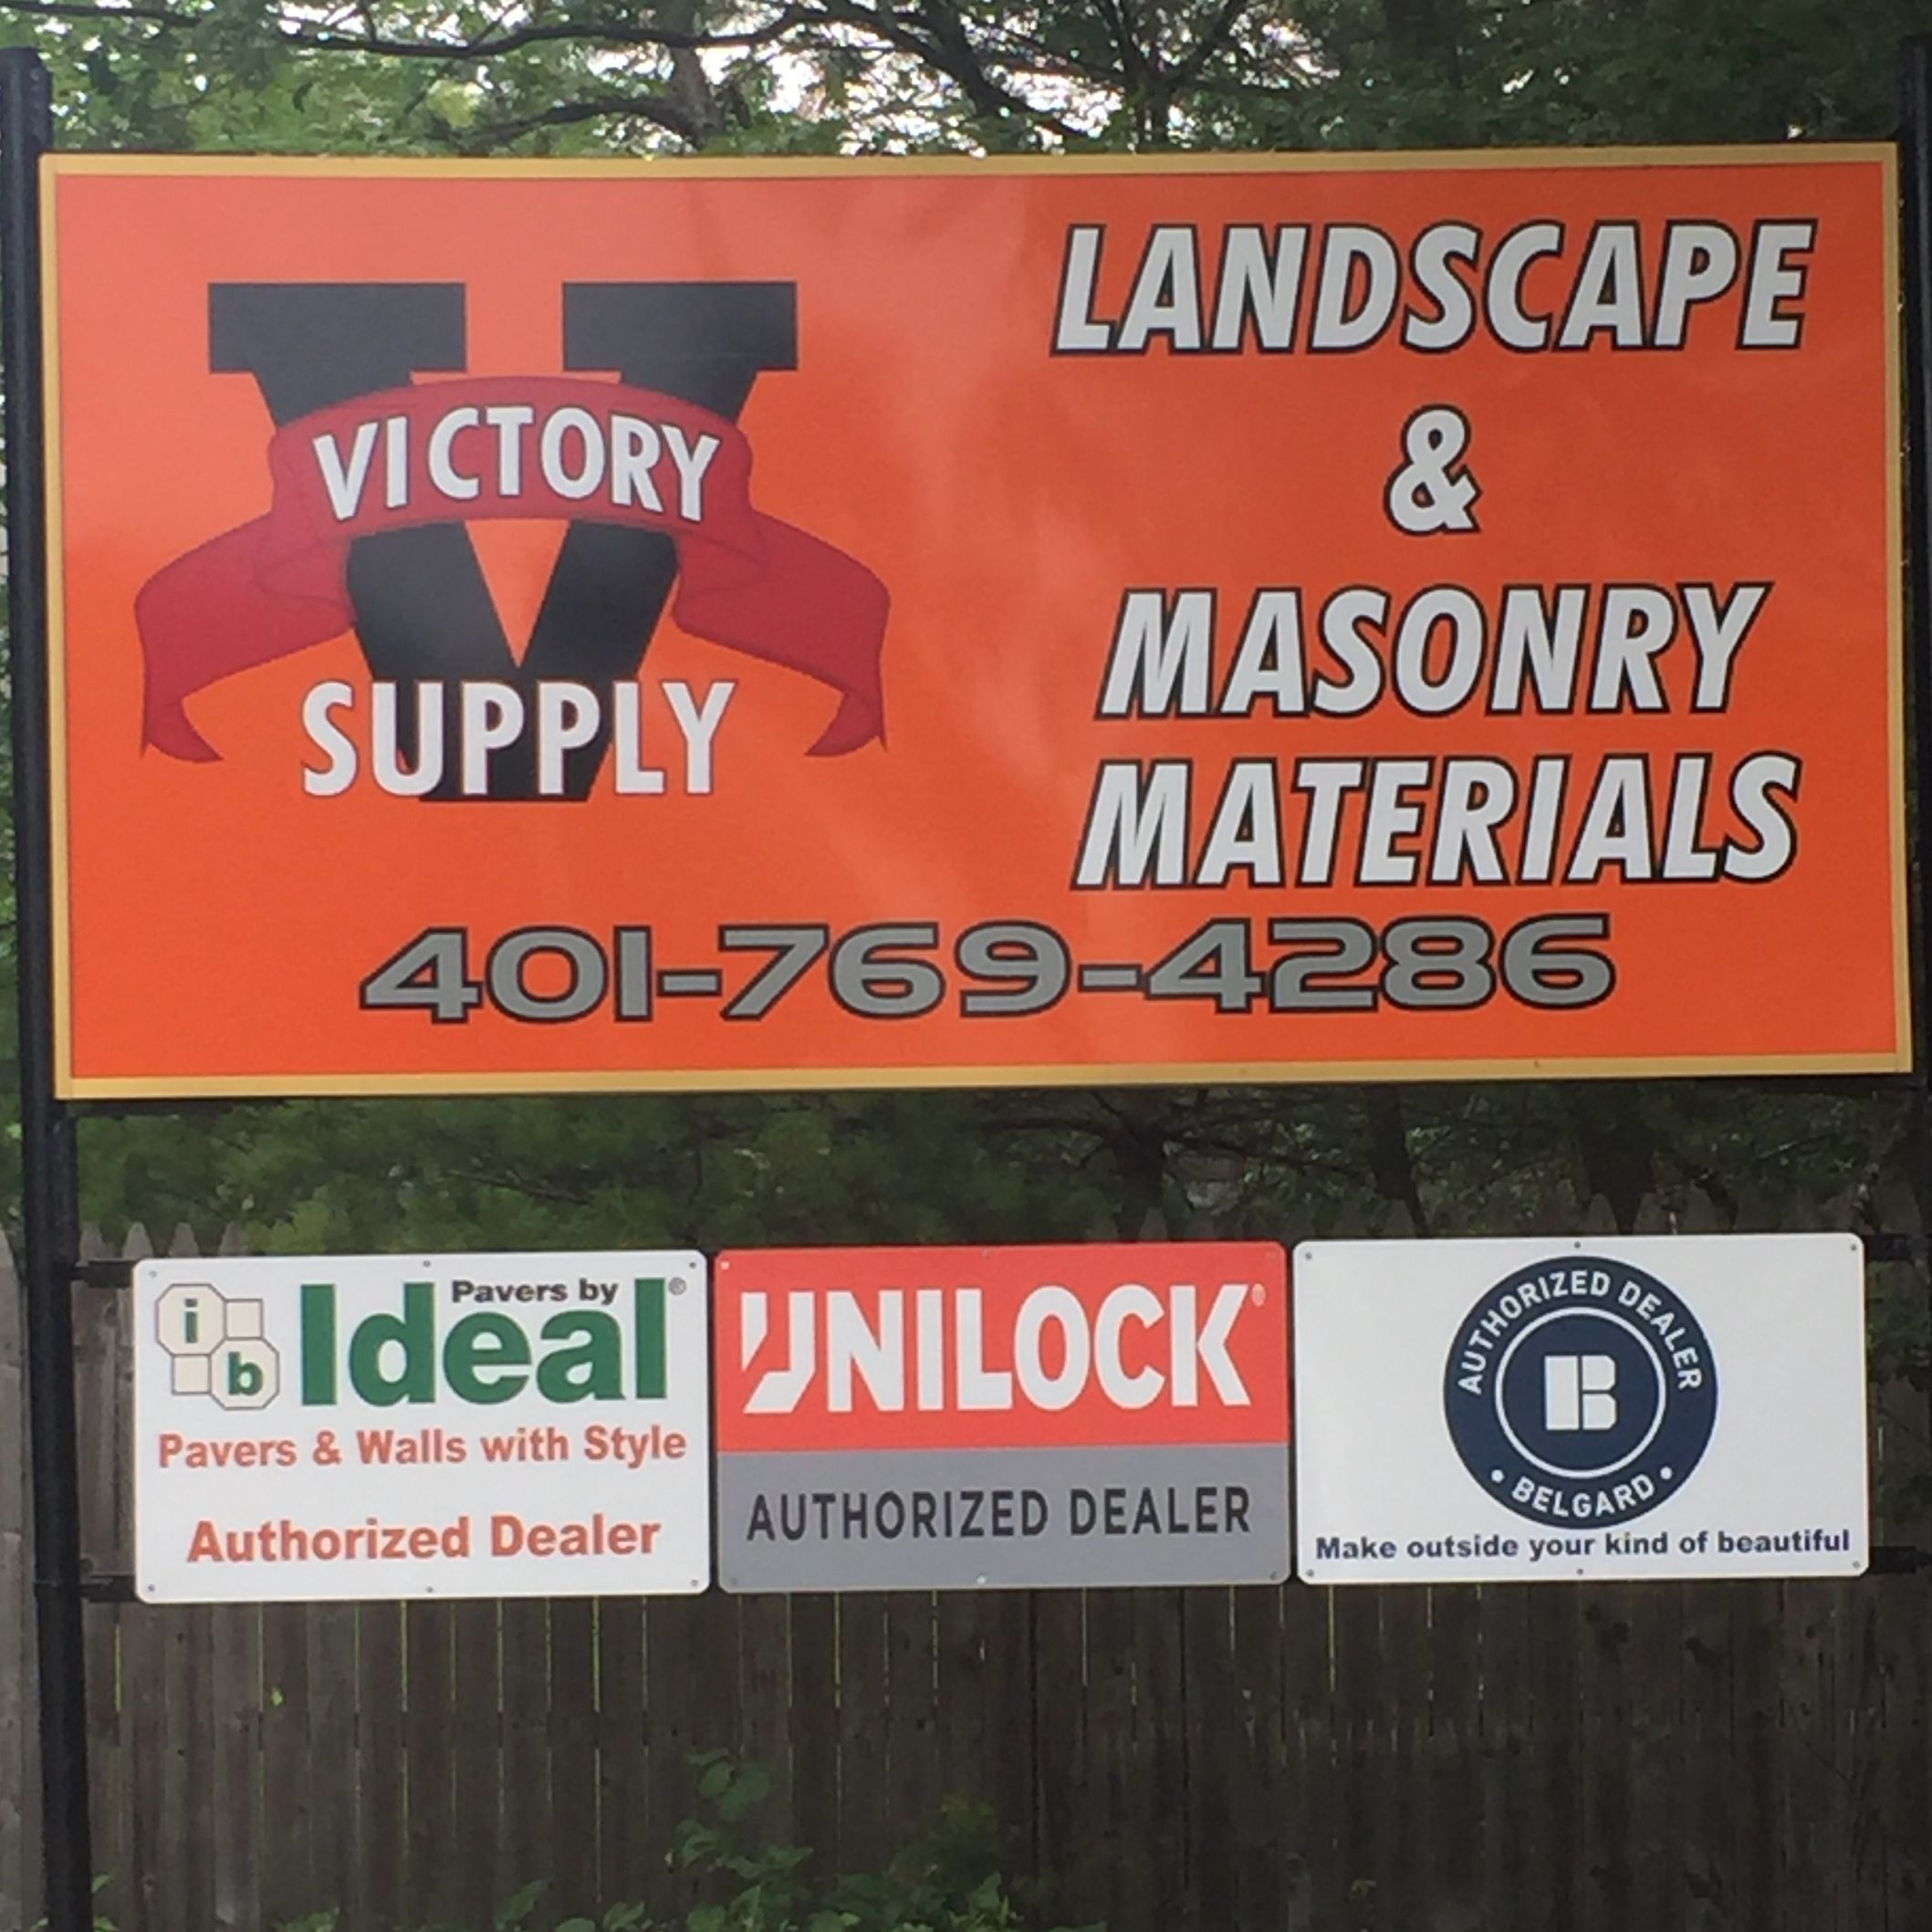 Victory Supply LLC